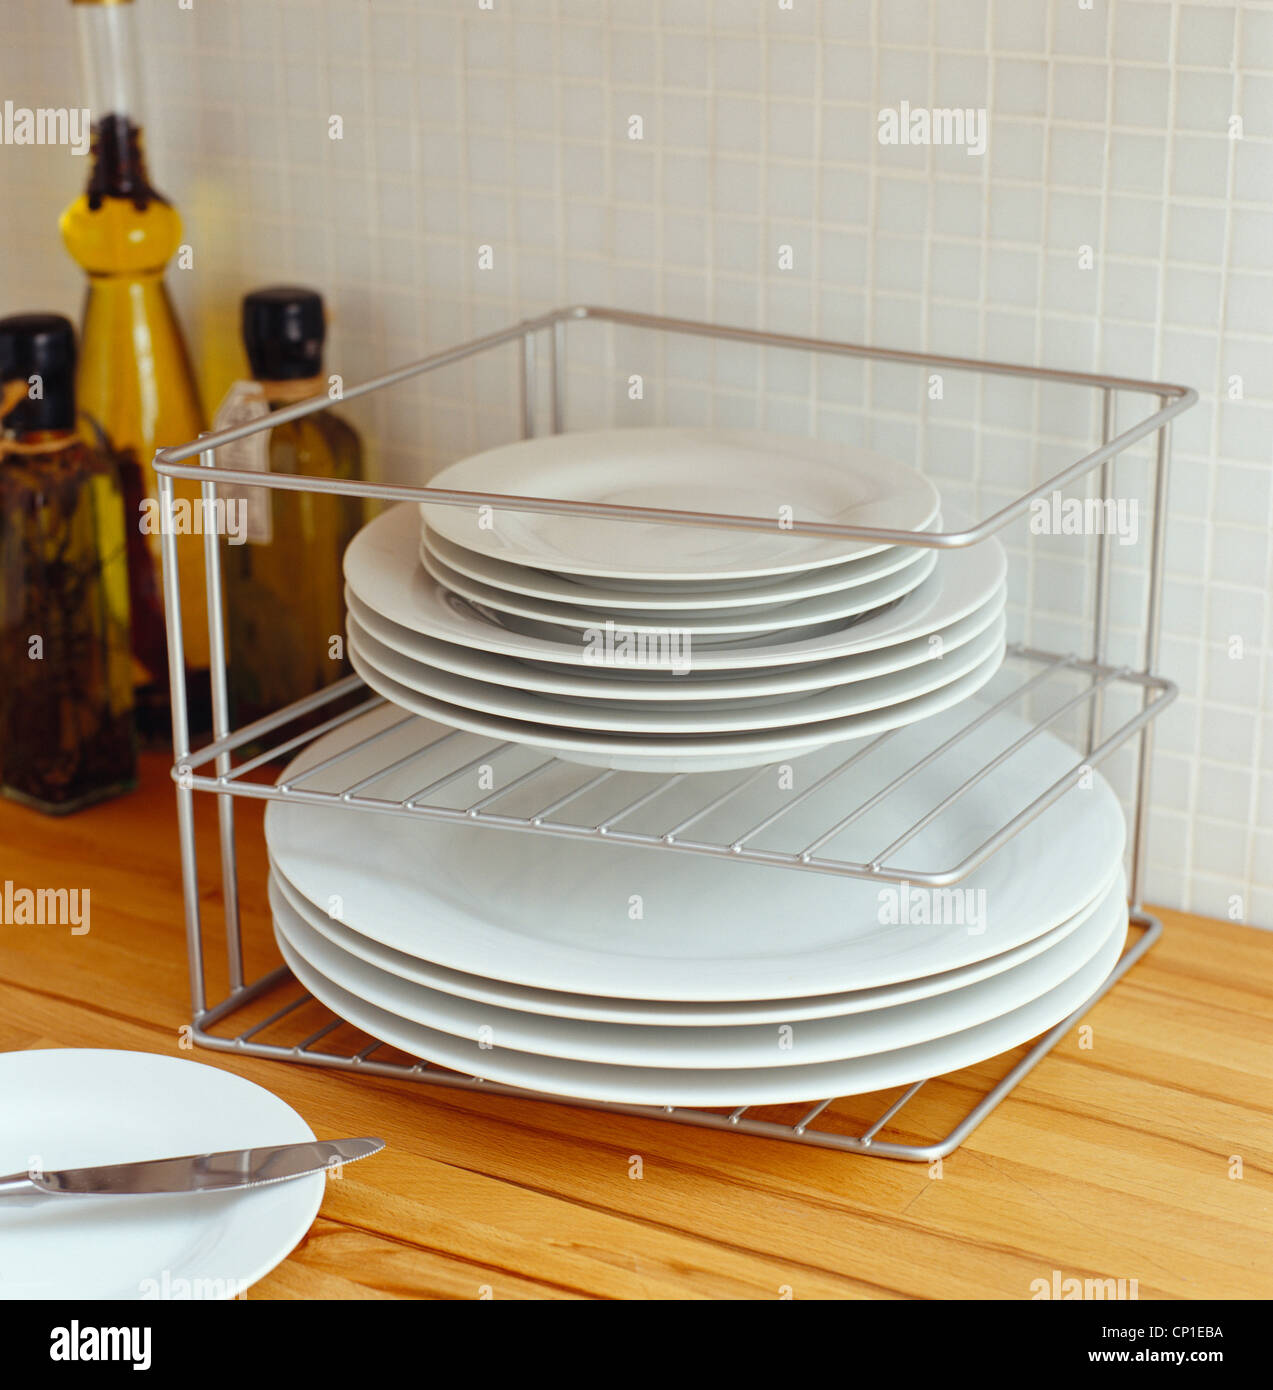 Chrome wire rack for stacking plates & Chrome wire rack for stacking plates Stock Photo: 47976414 - Alamy